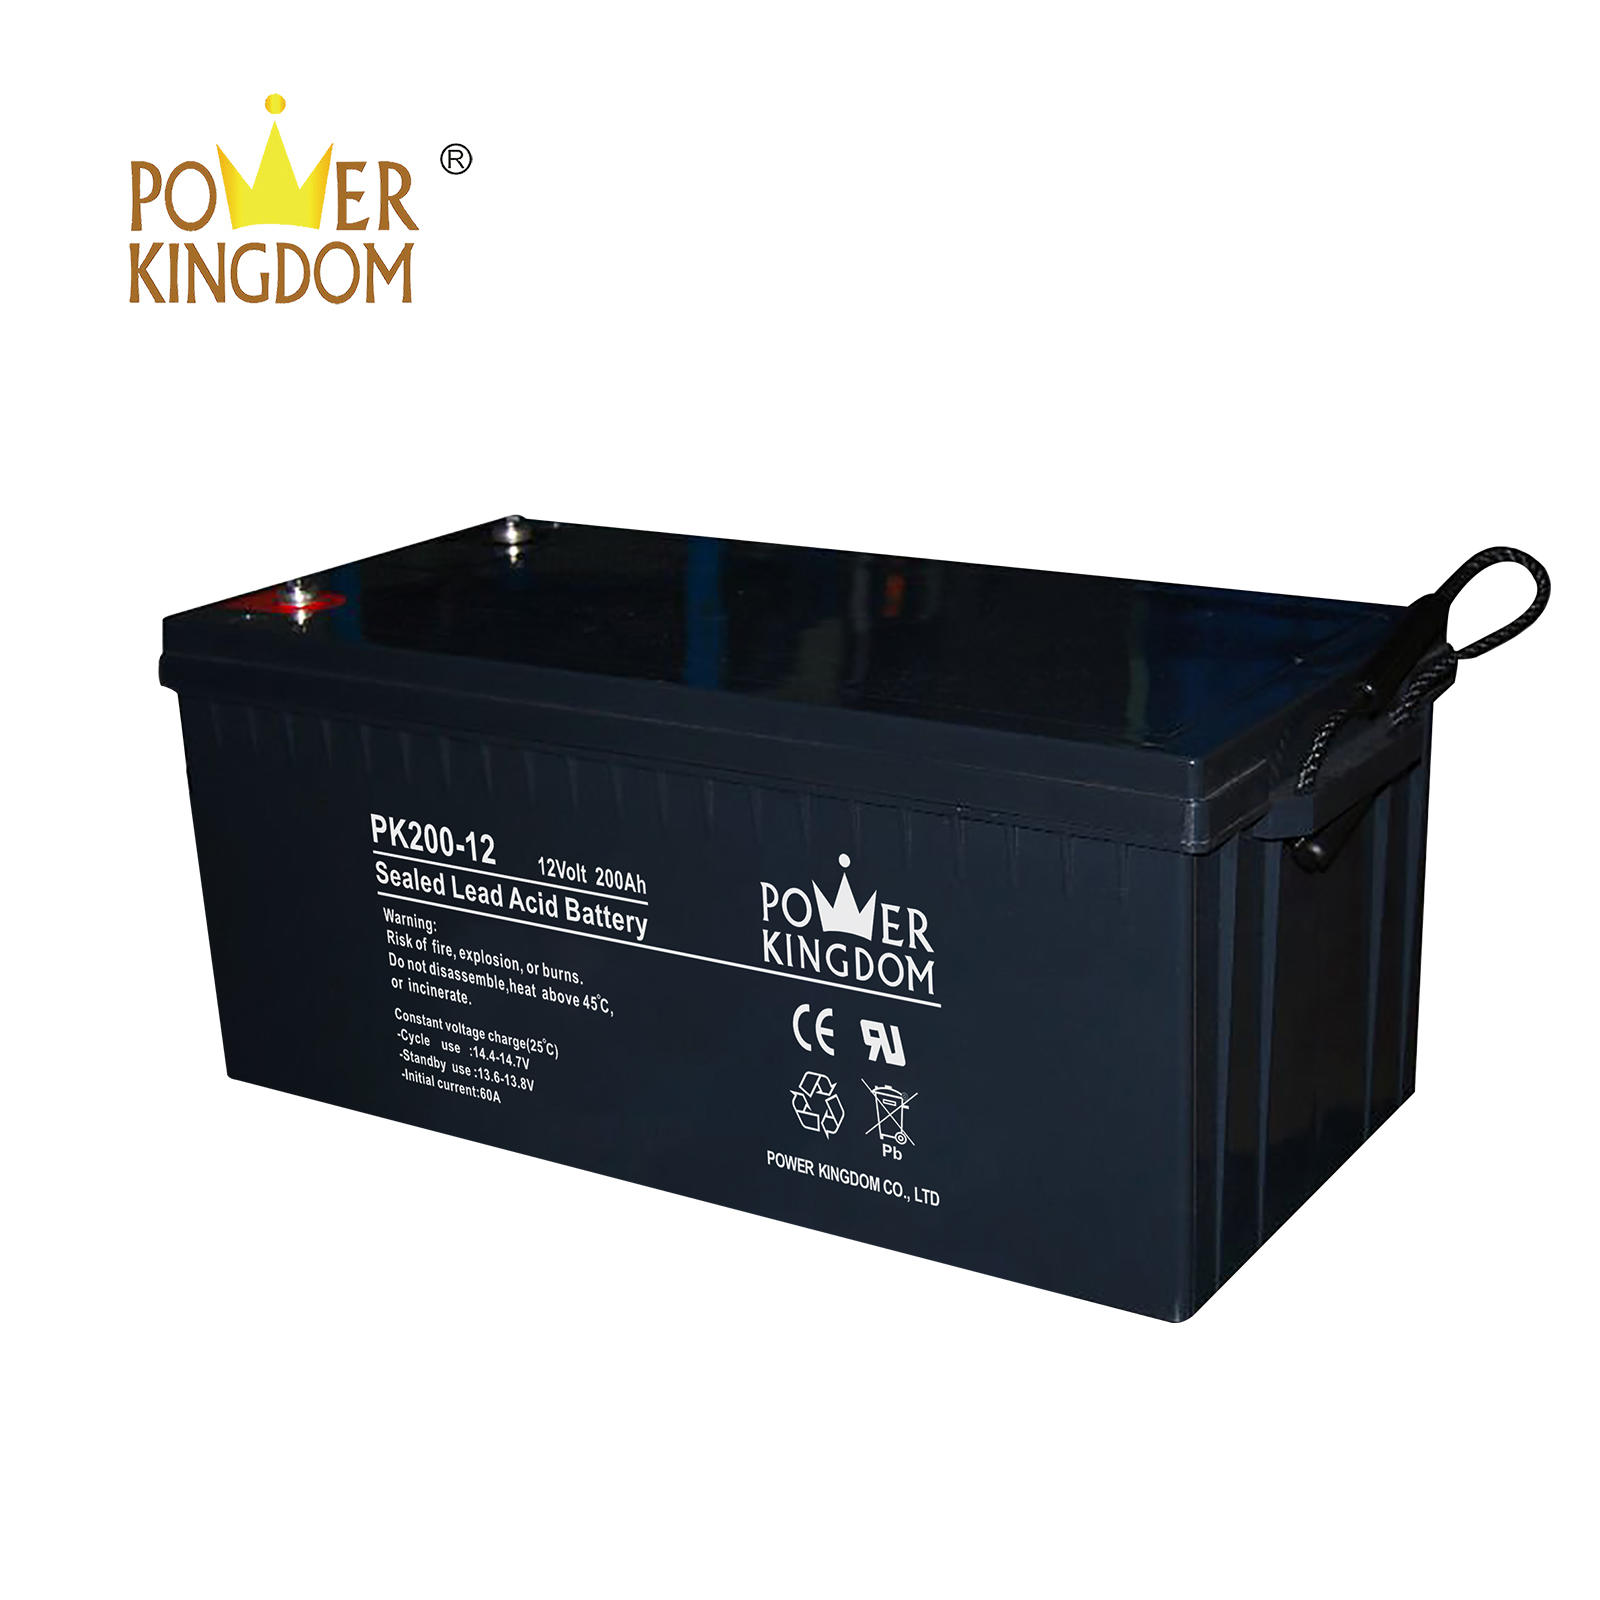 VRLA Maintenance free sealed lead acid AGM battery for energy storage